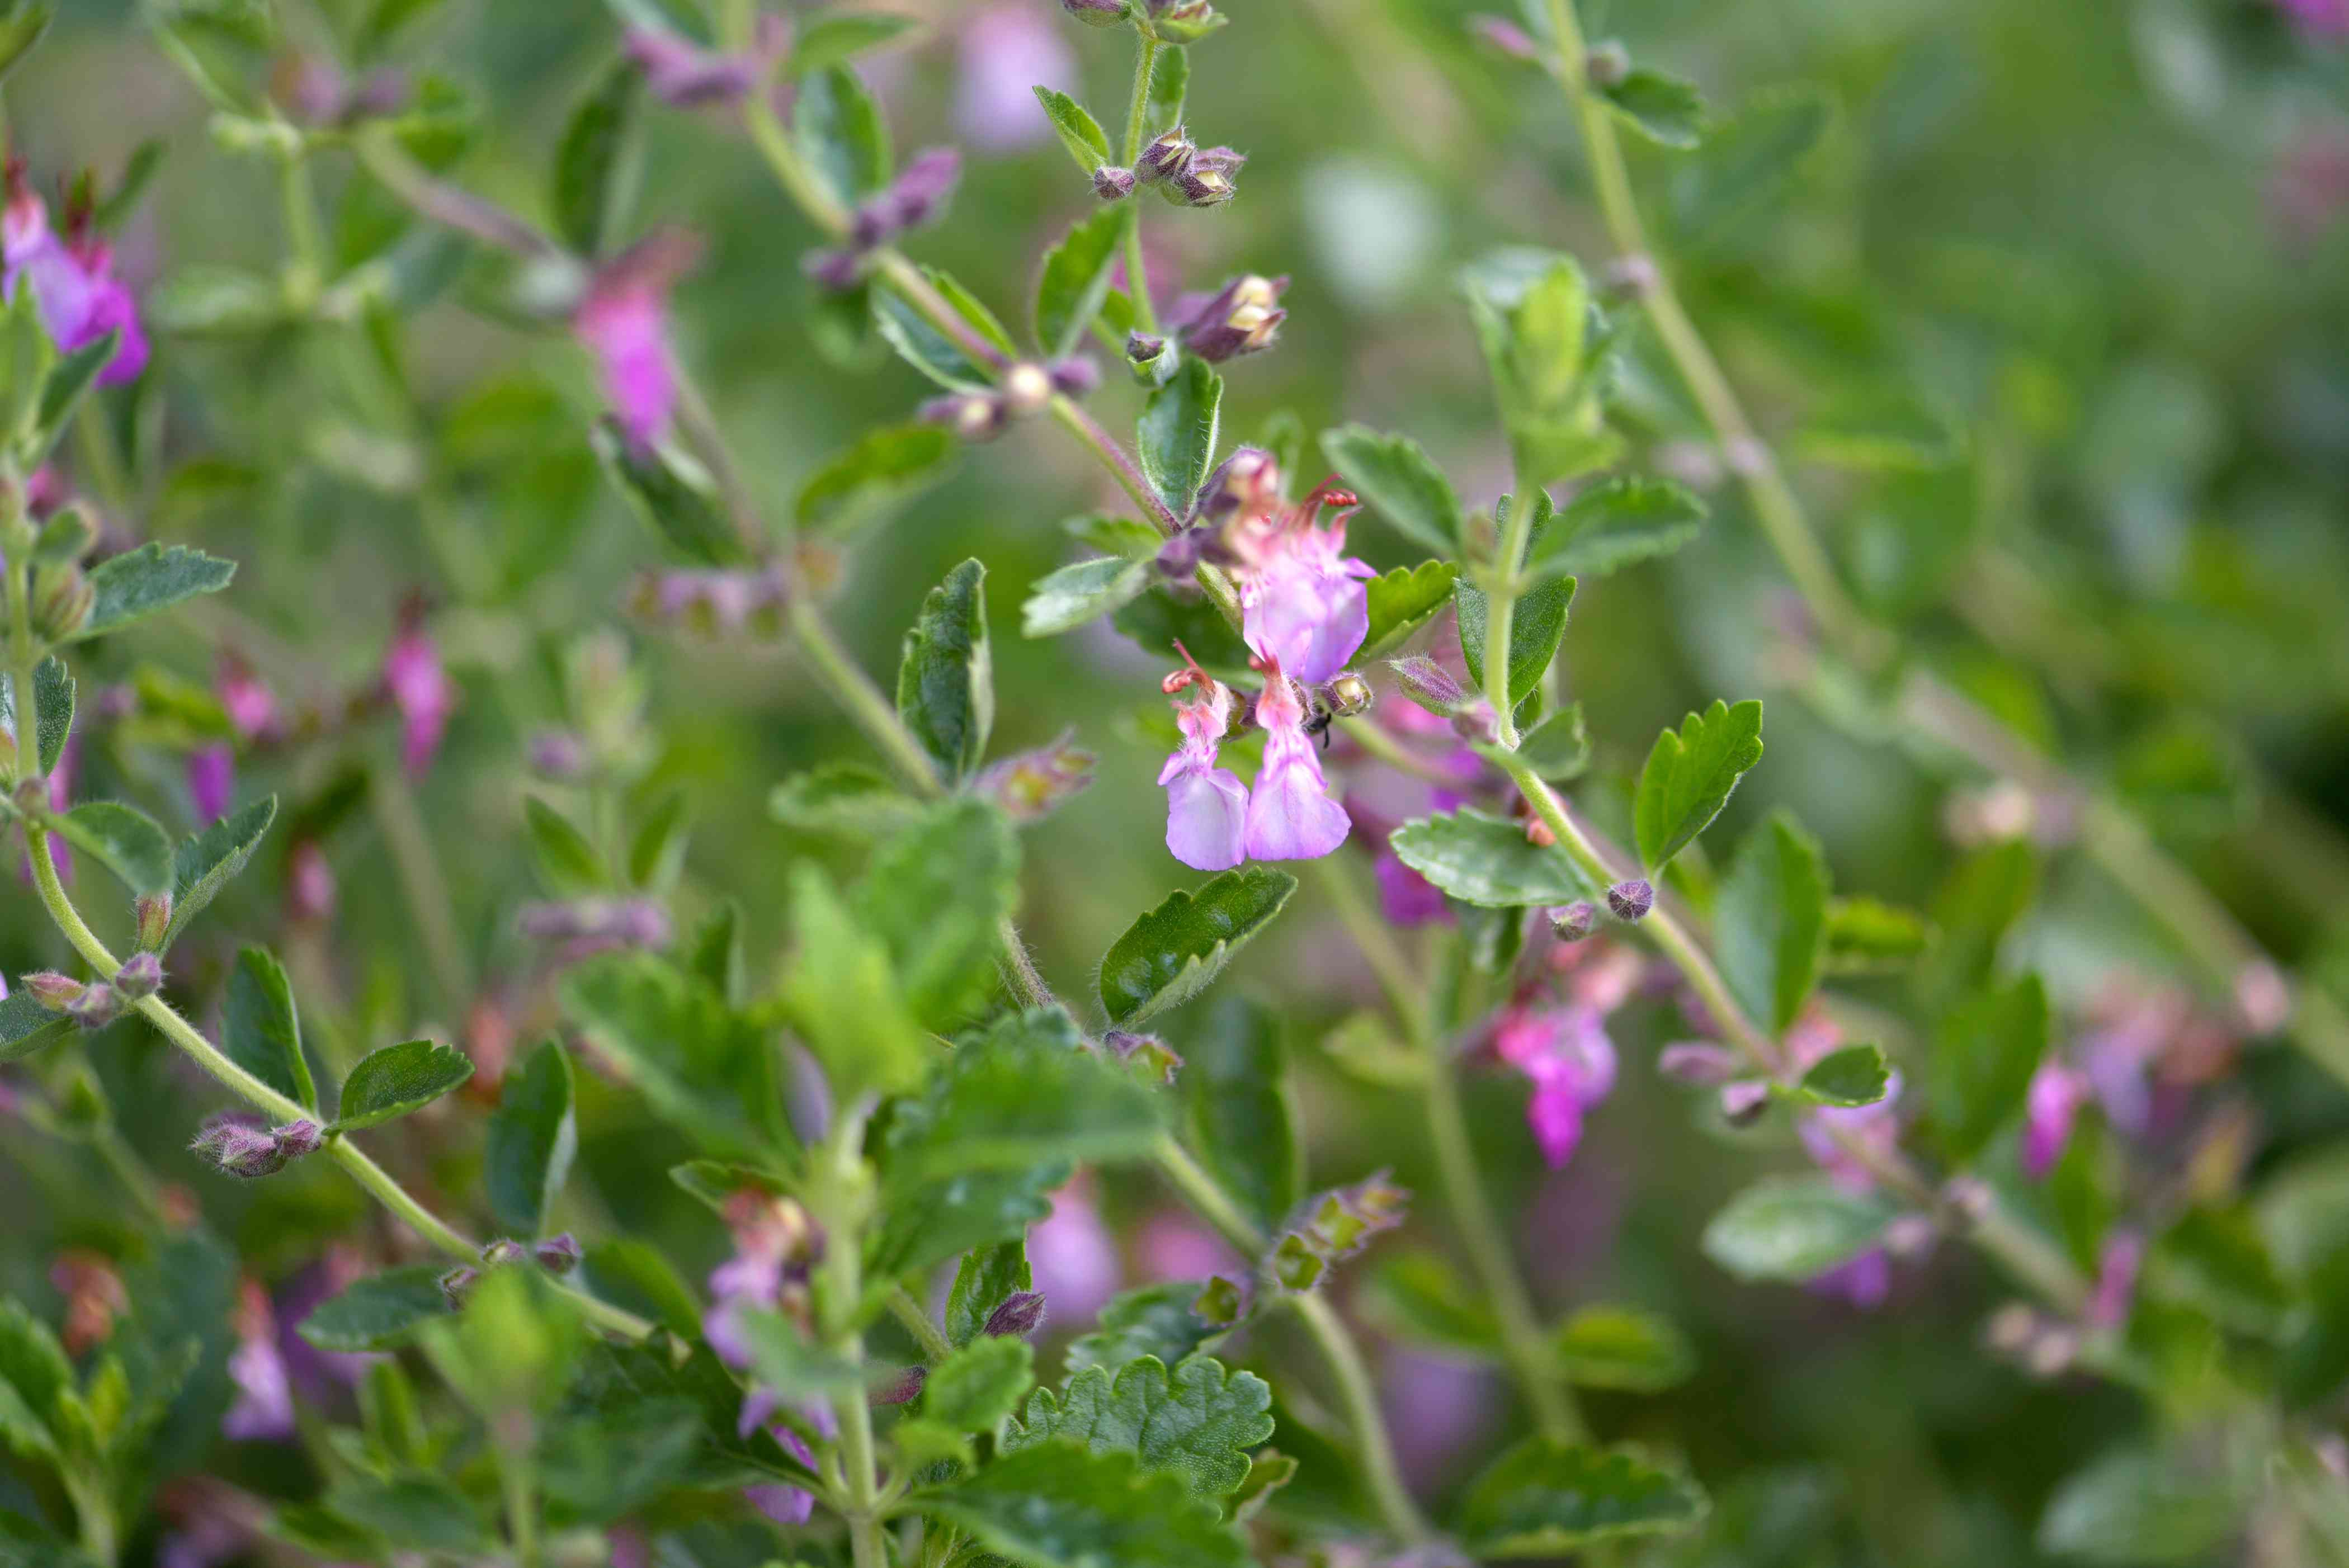 Wall germander plant stem with tiny light purple flower and buds closeup